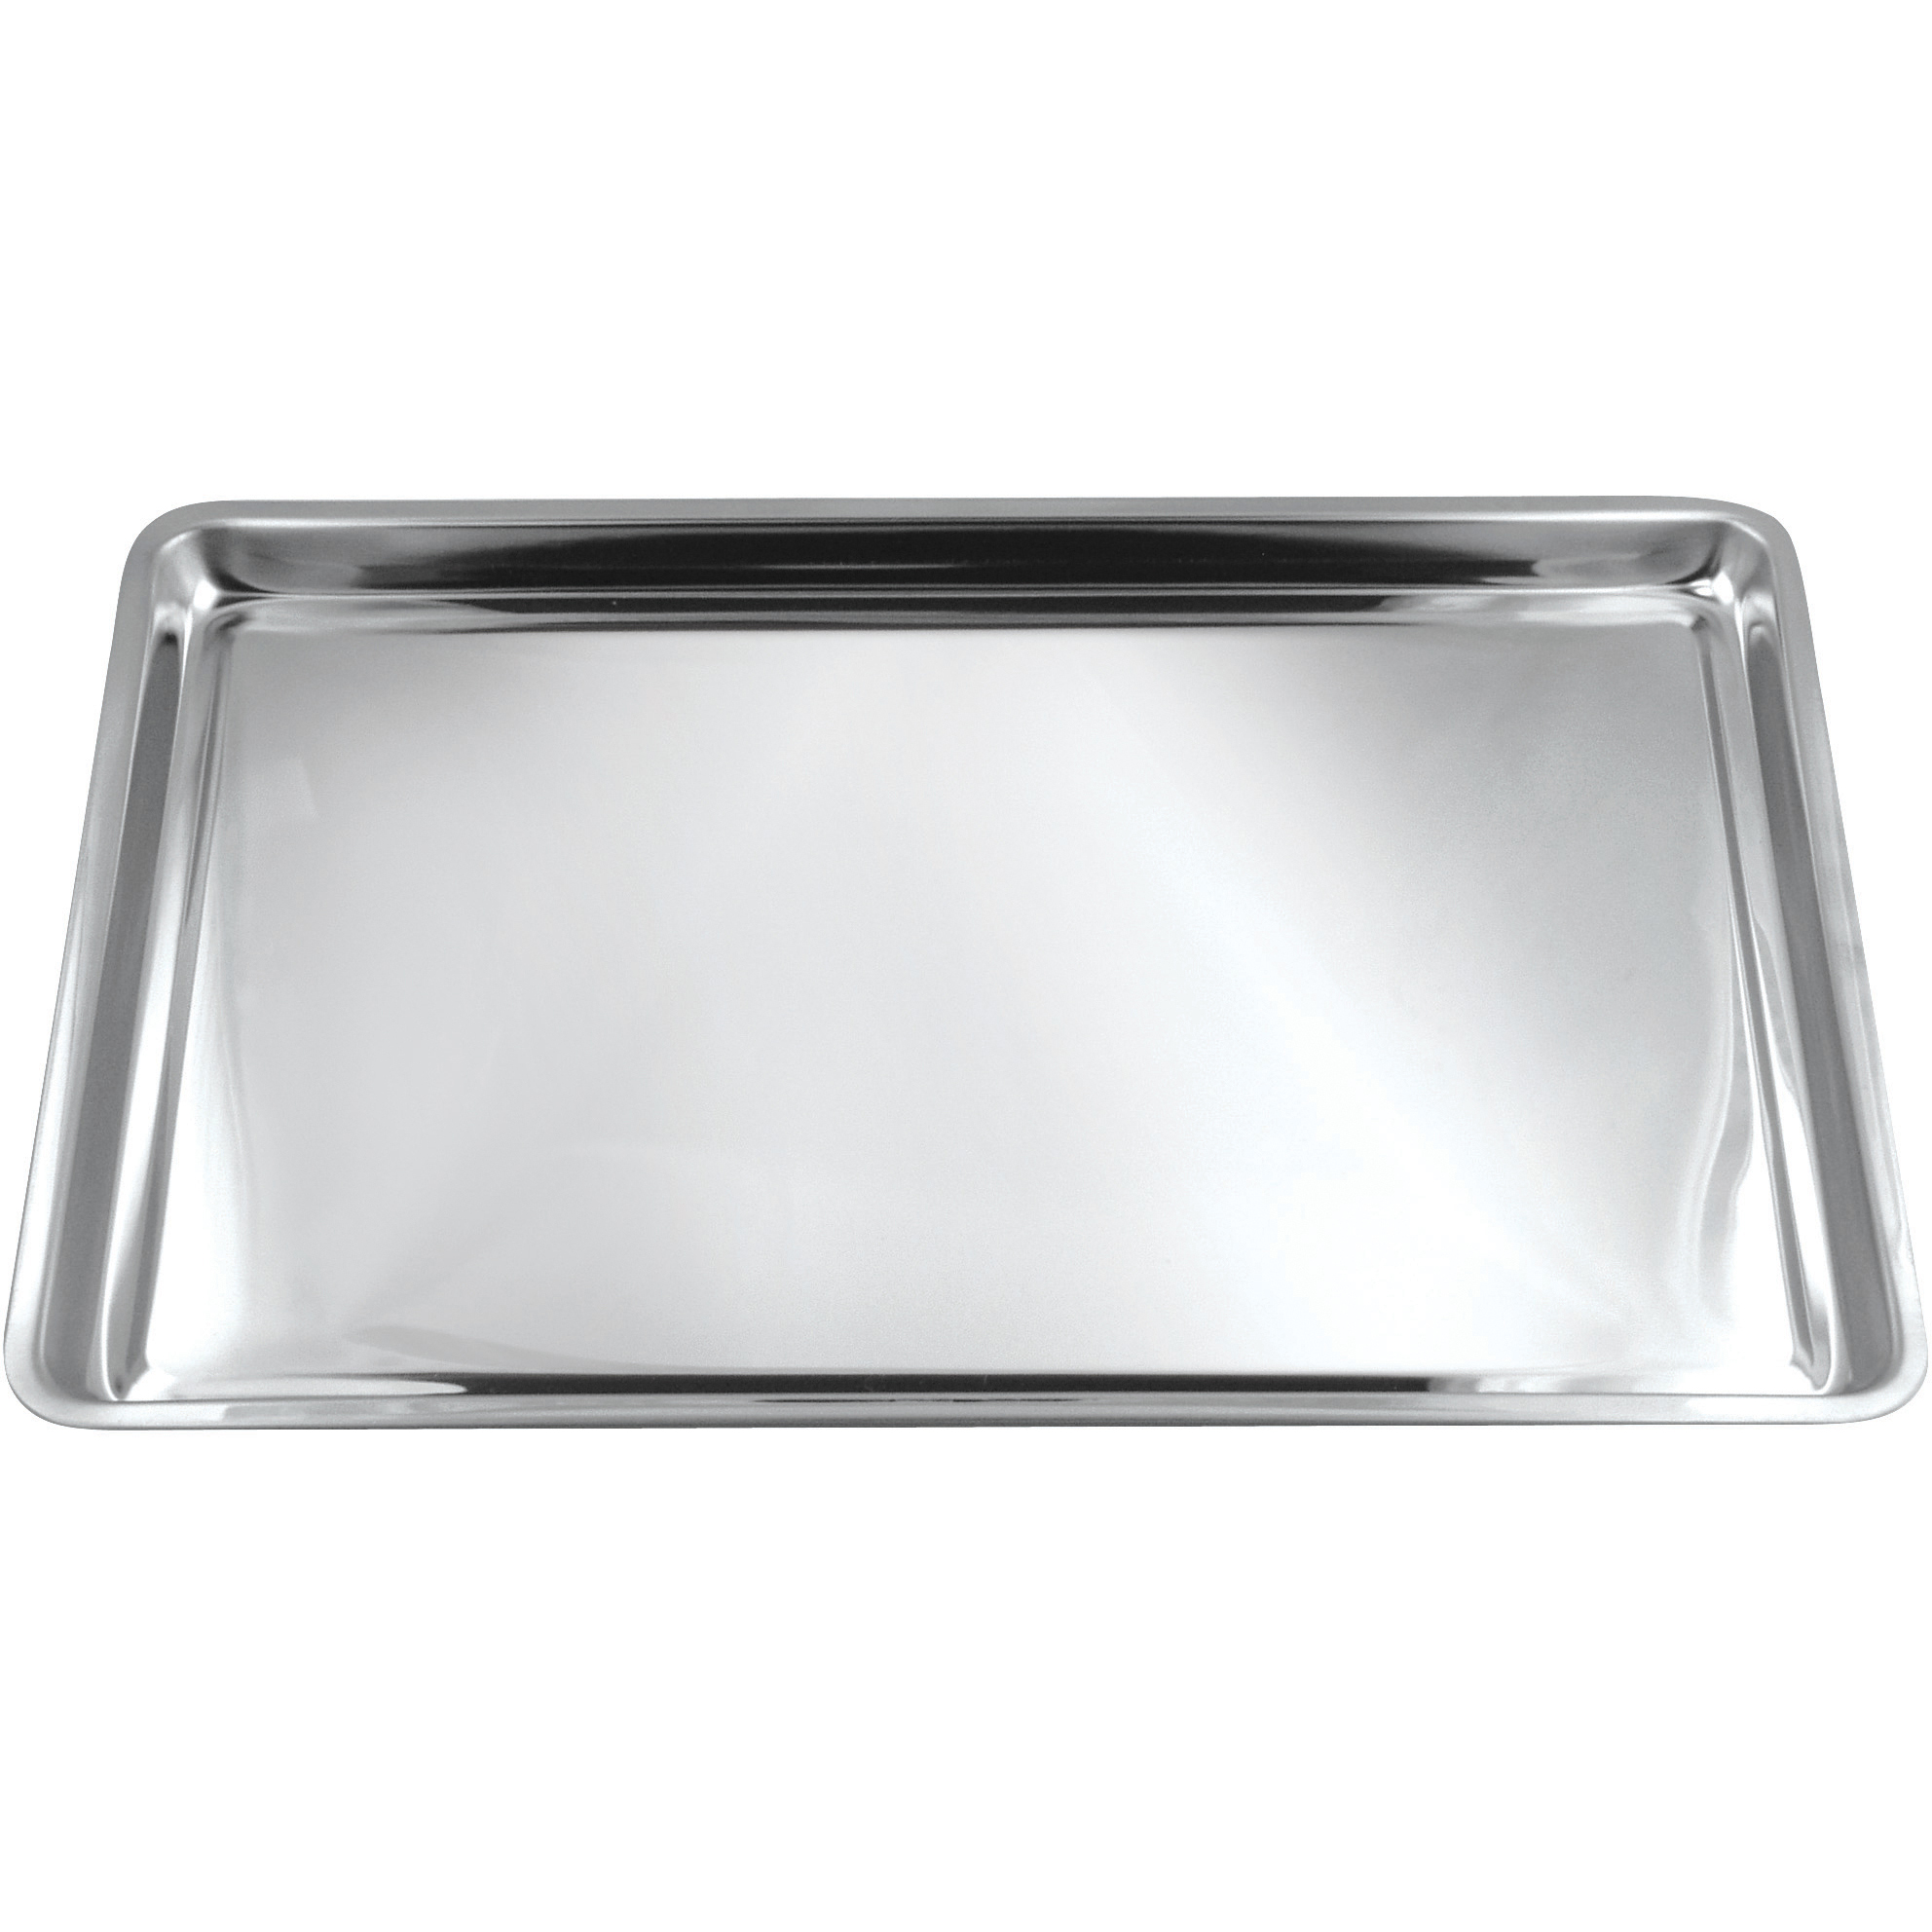 Foxrun Stainless Steel Jelly Roll Pan